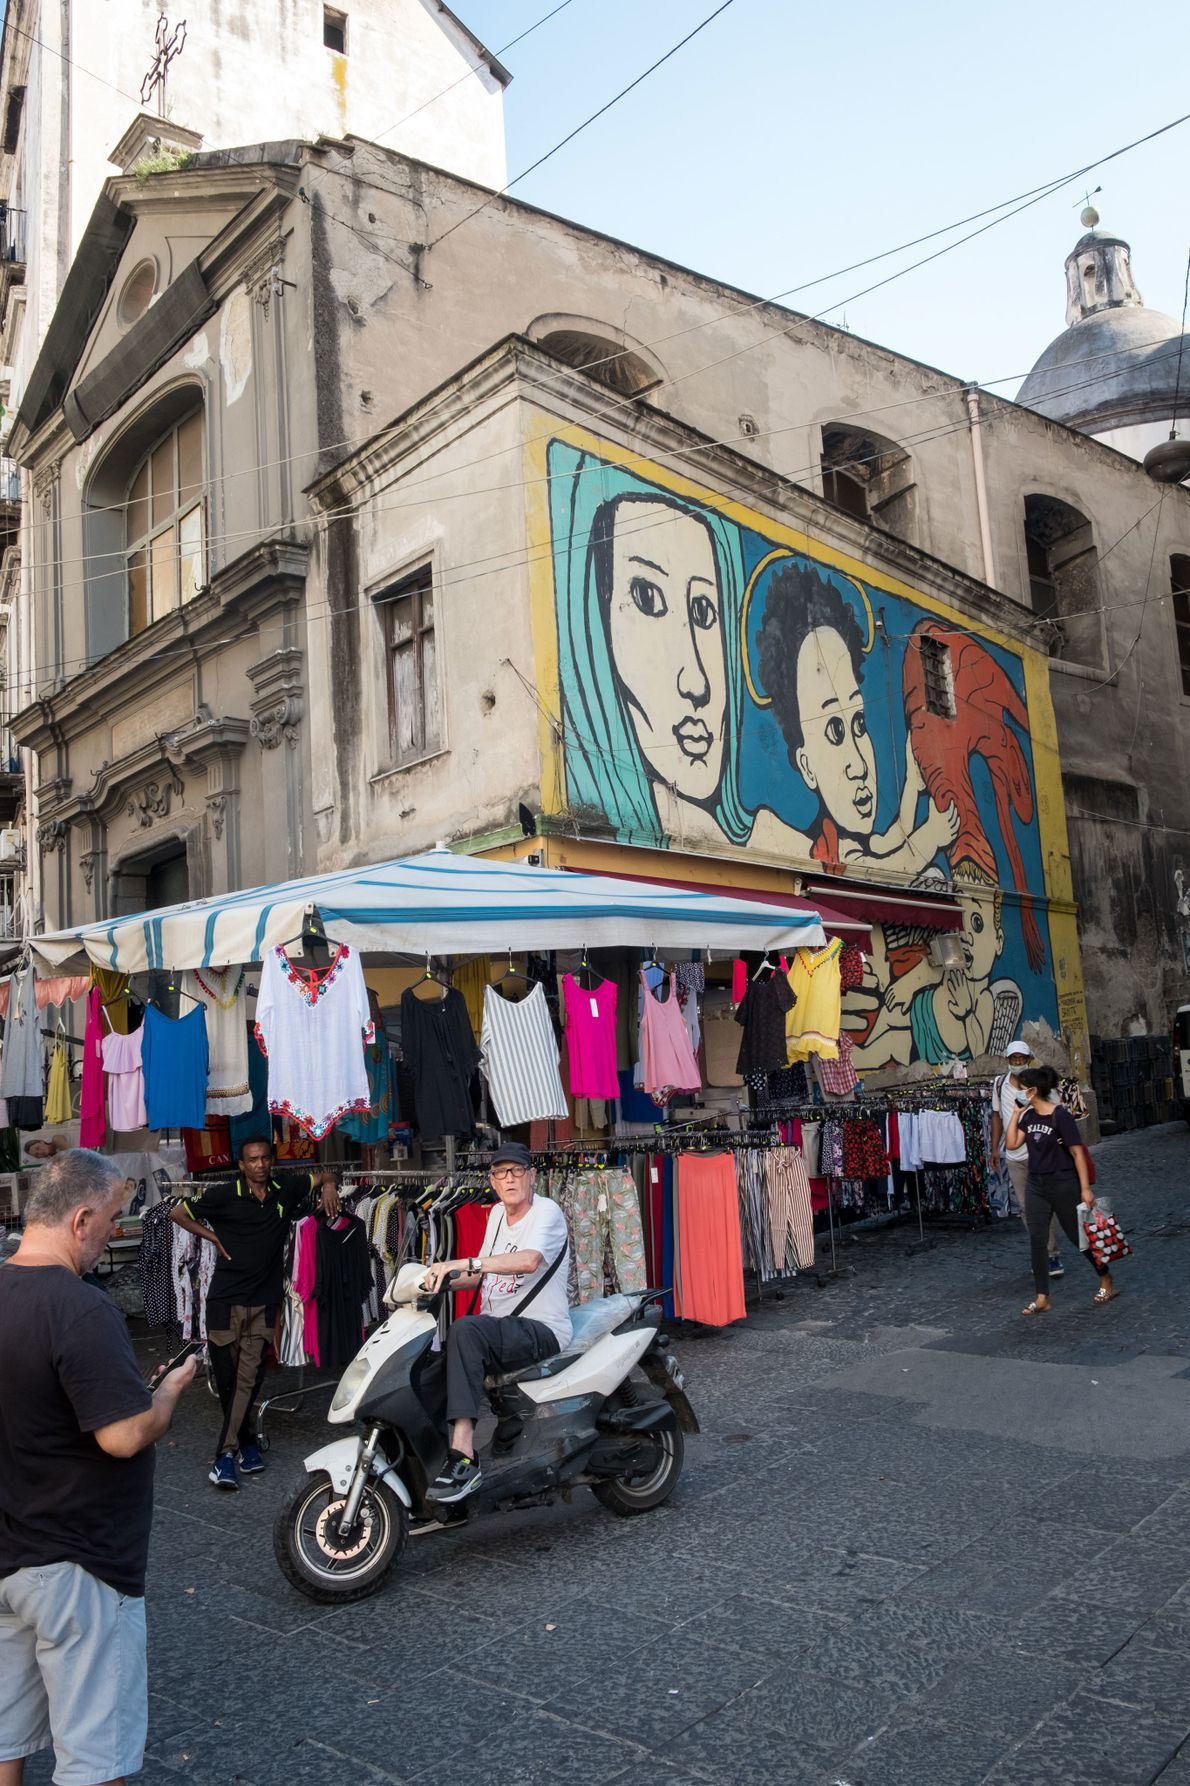 The daily market in Via Vergini, where clothes stalls are set up in front of street ...